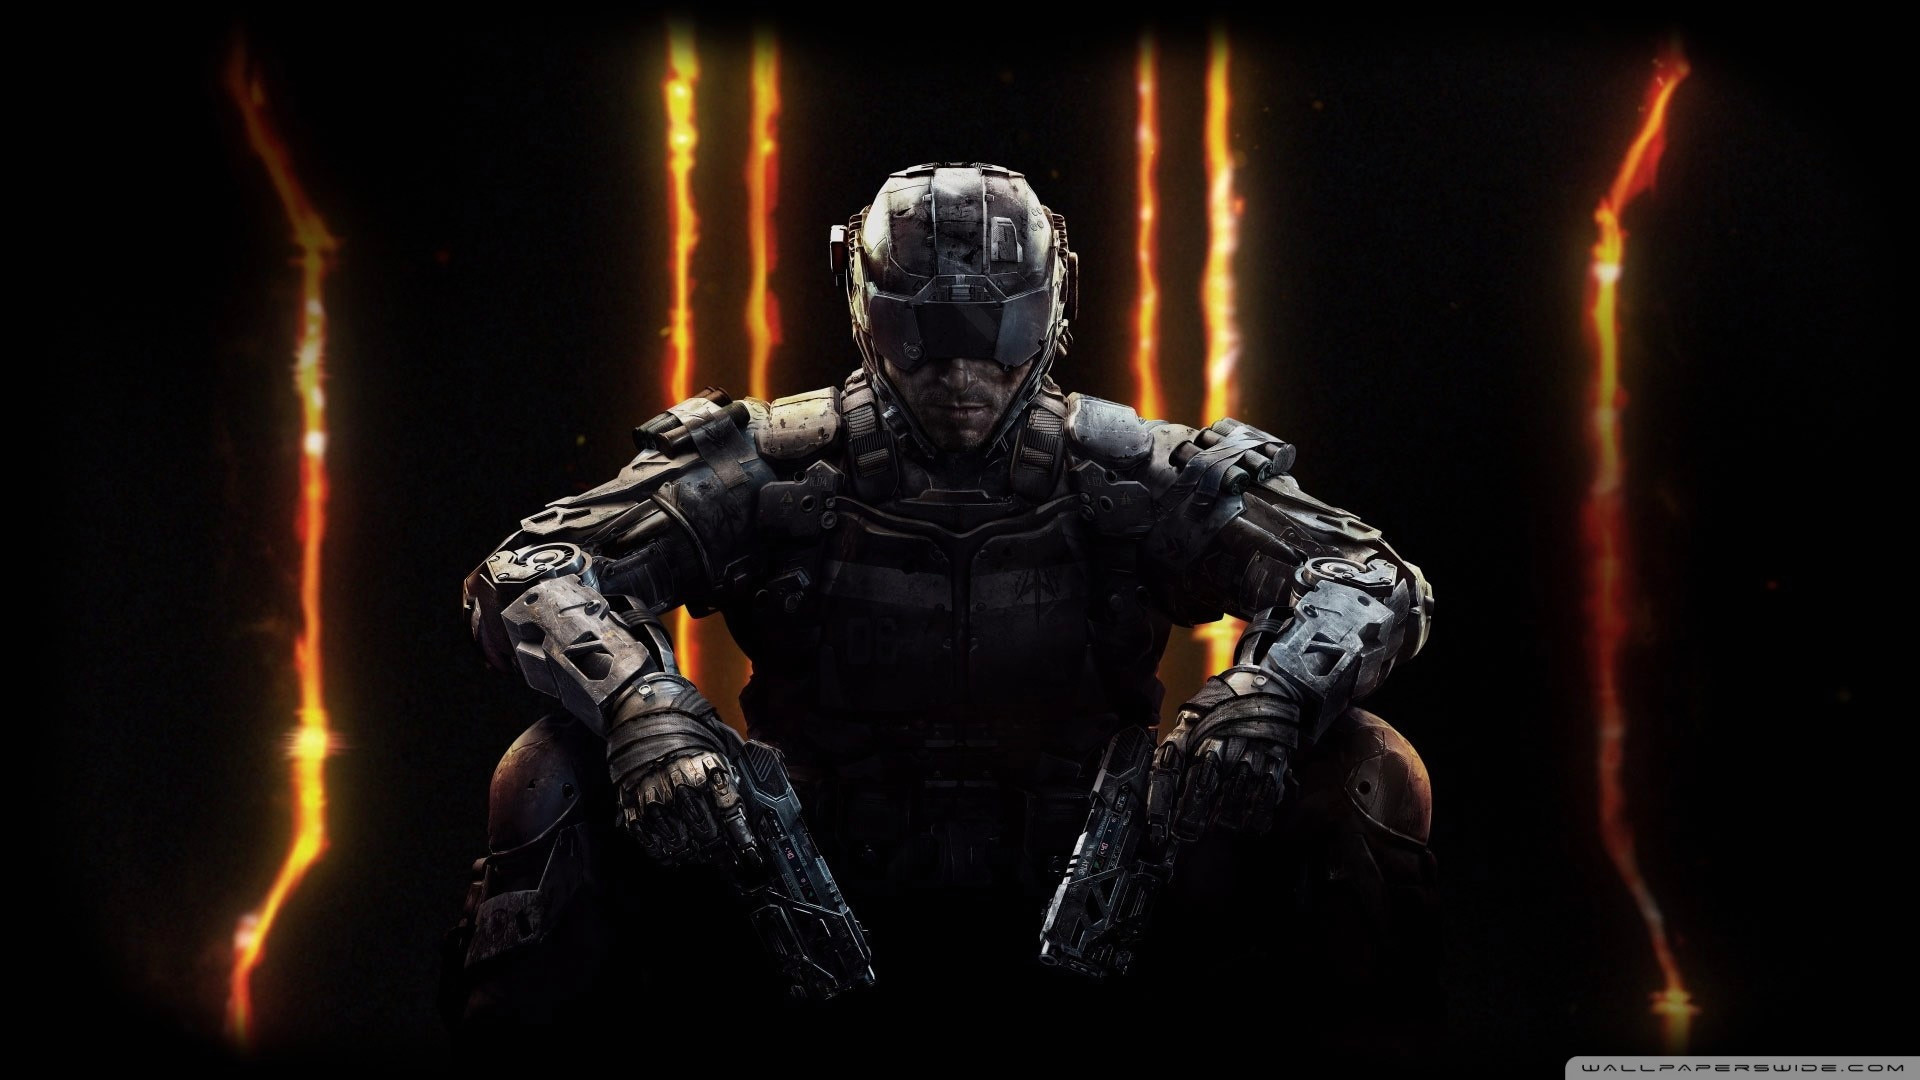 Res: 1920x1080, iPhone 5 Wallpaper Epic Wallpaperswide â ¤ Call Duty Hd Desktop Wallpapers  for 4k Of iPhone